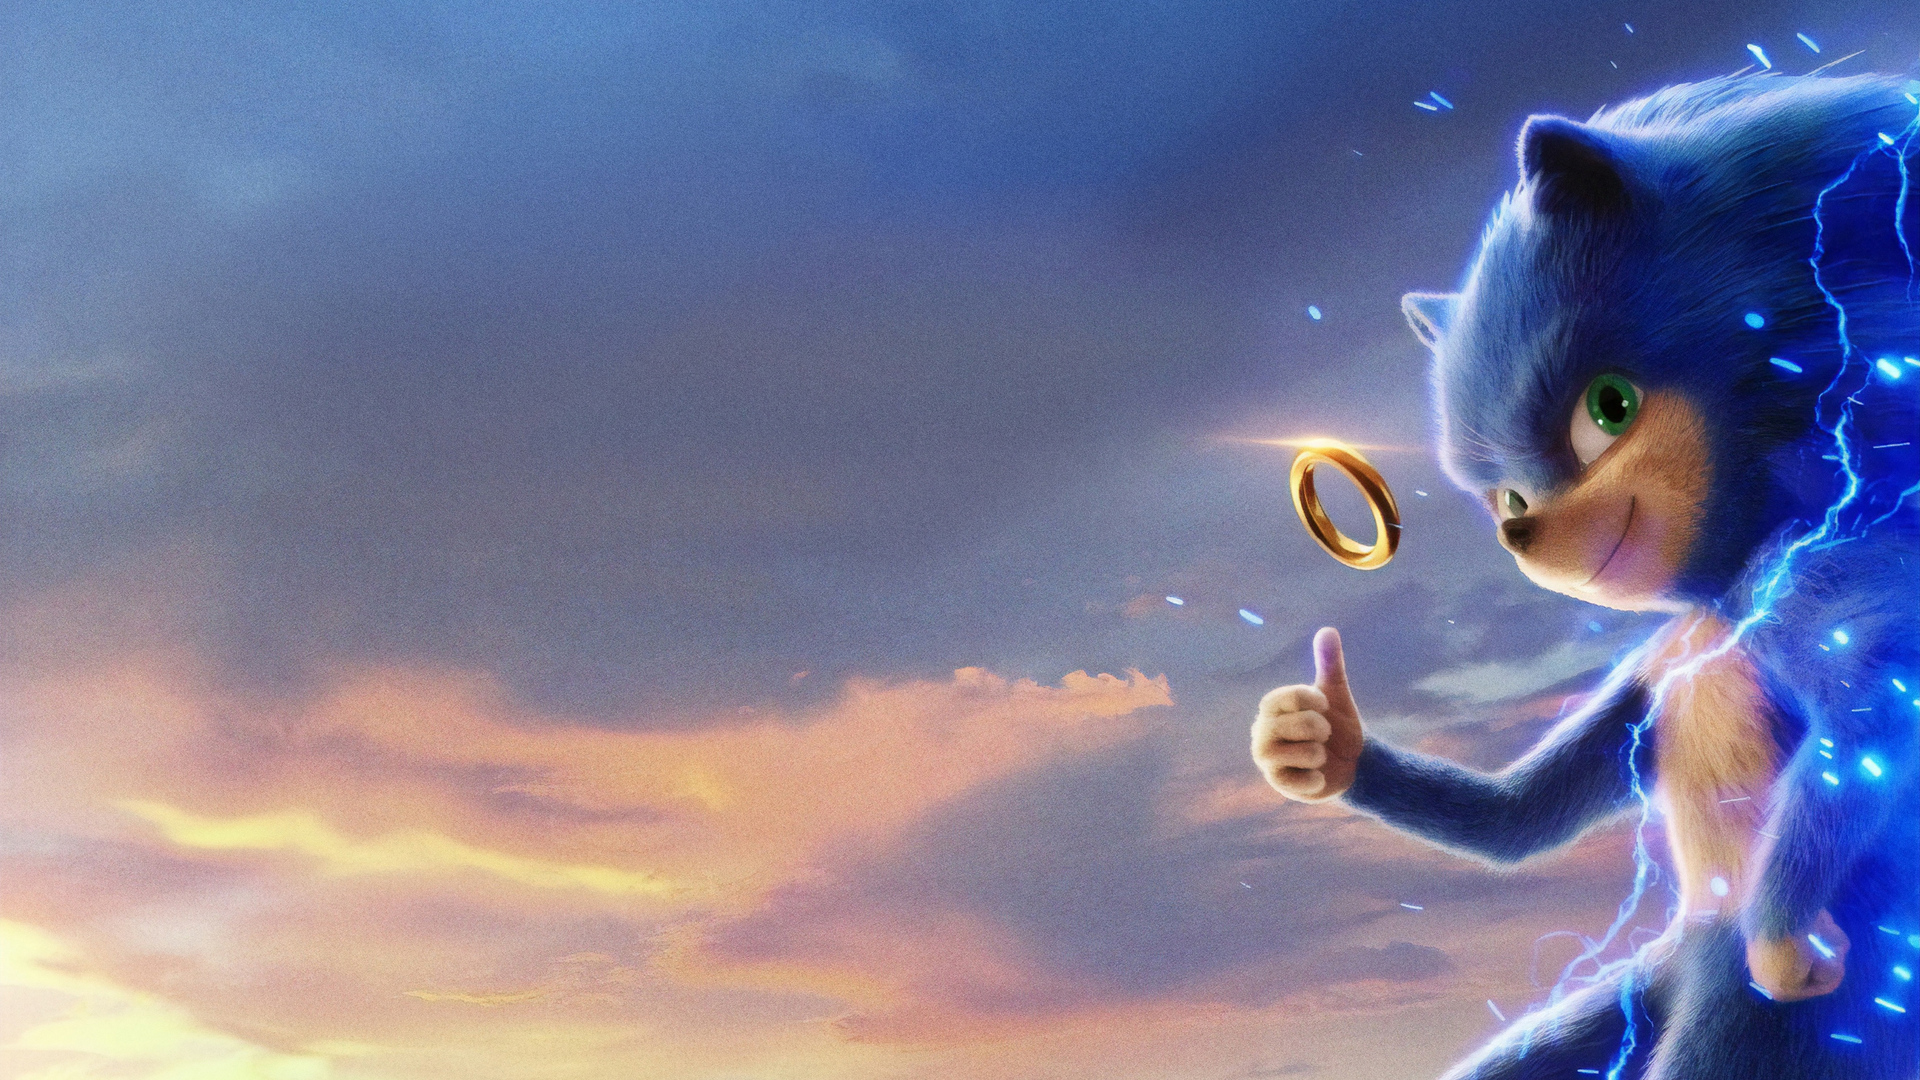 1920x1080 Sonic The Hedgehog 2019 Movie 4k Laptop Full Hd 1080p Hd 4k Wallpapers Images Backgrounds Photos And Pictures